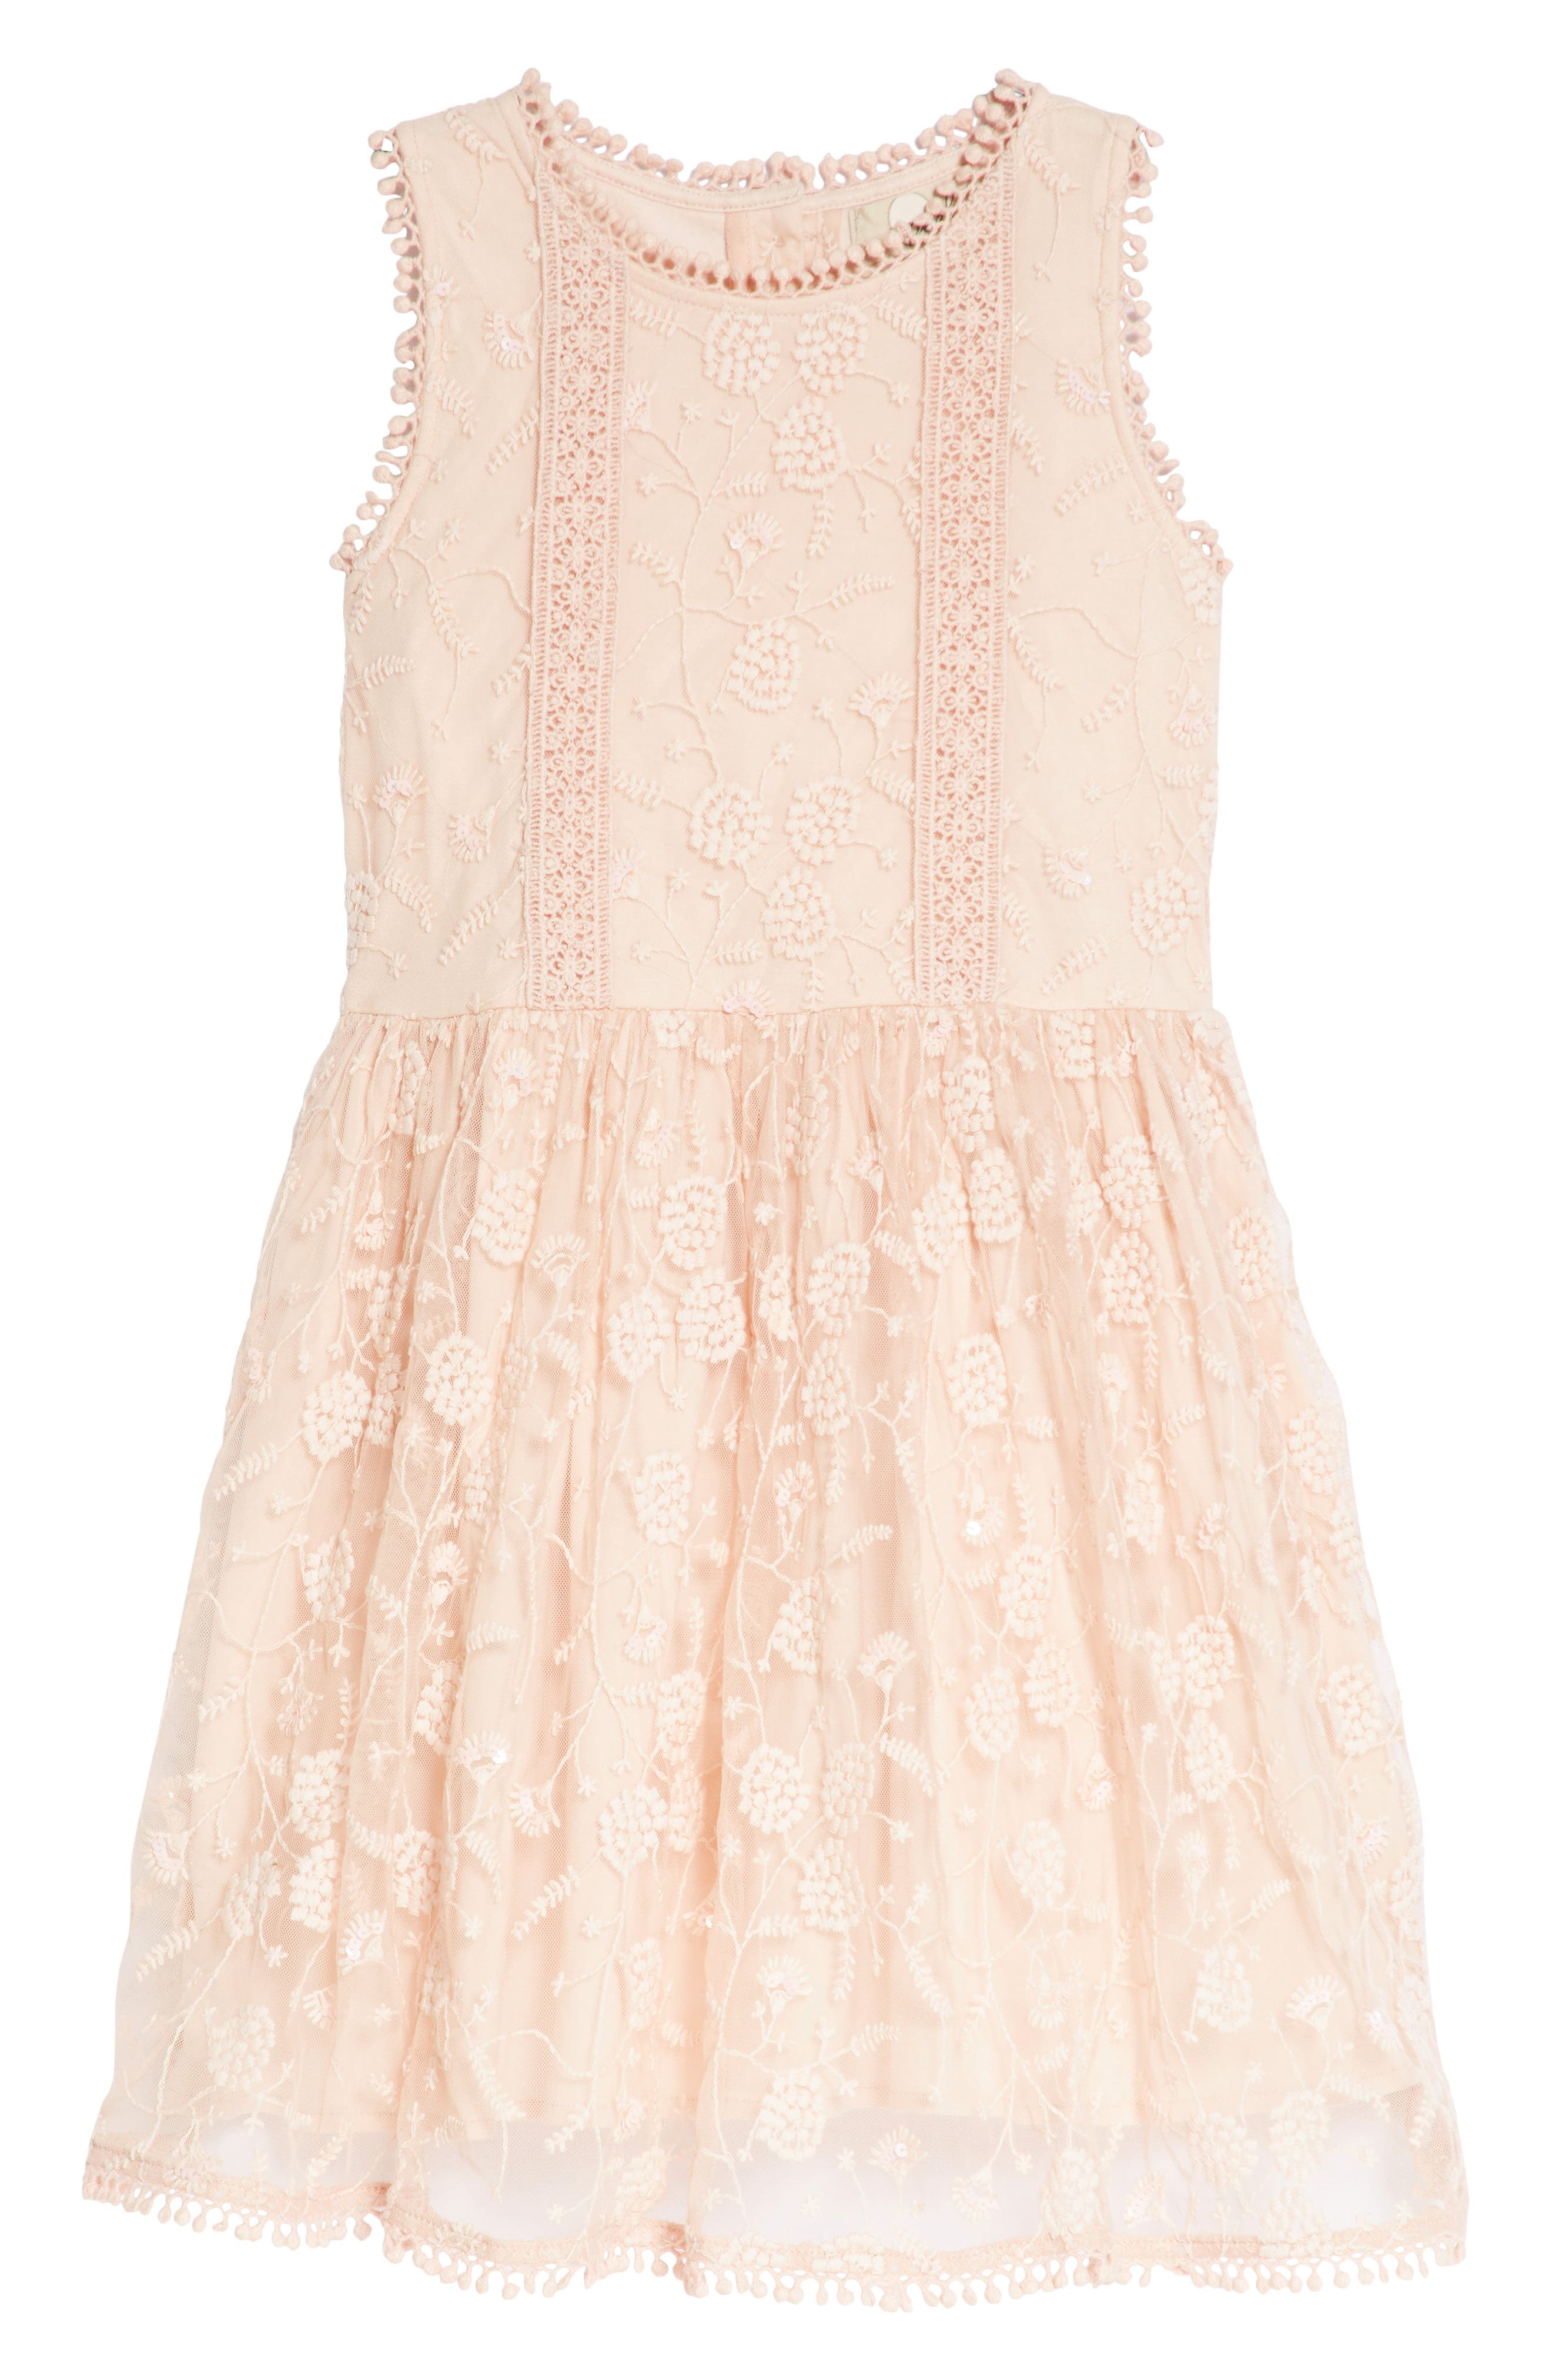 Peek Alice Embroidered Lace Dress (Toddler Girls, Little Girls & Big Girls)